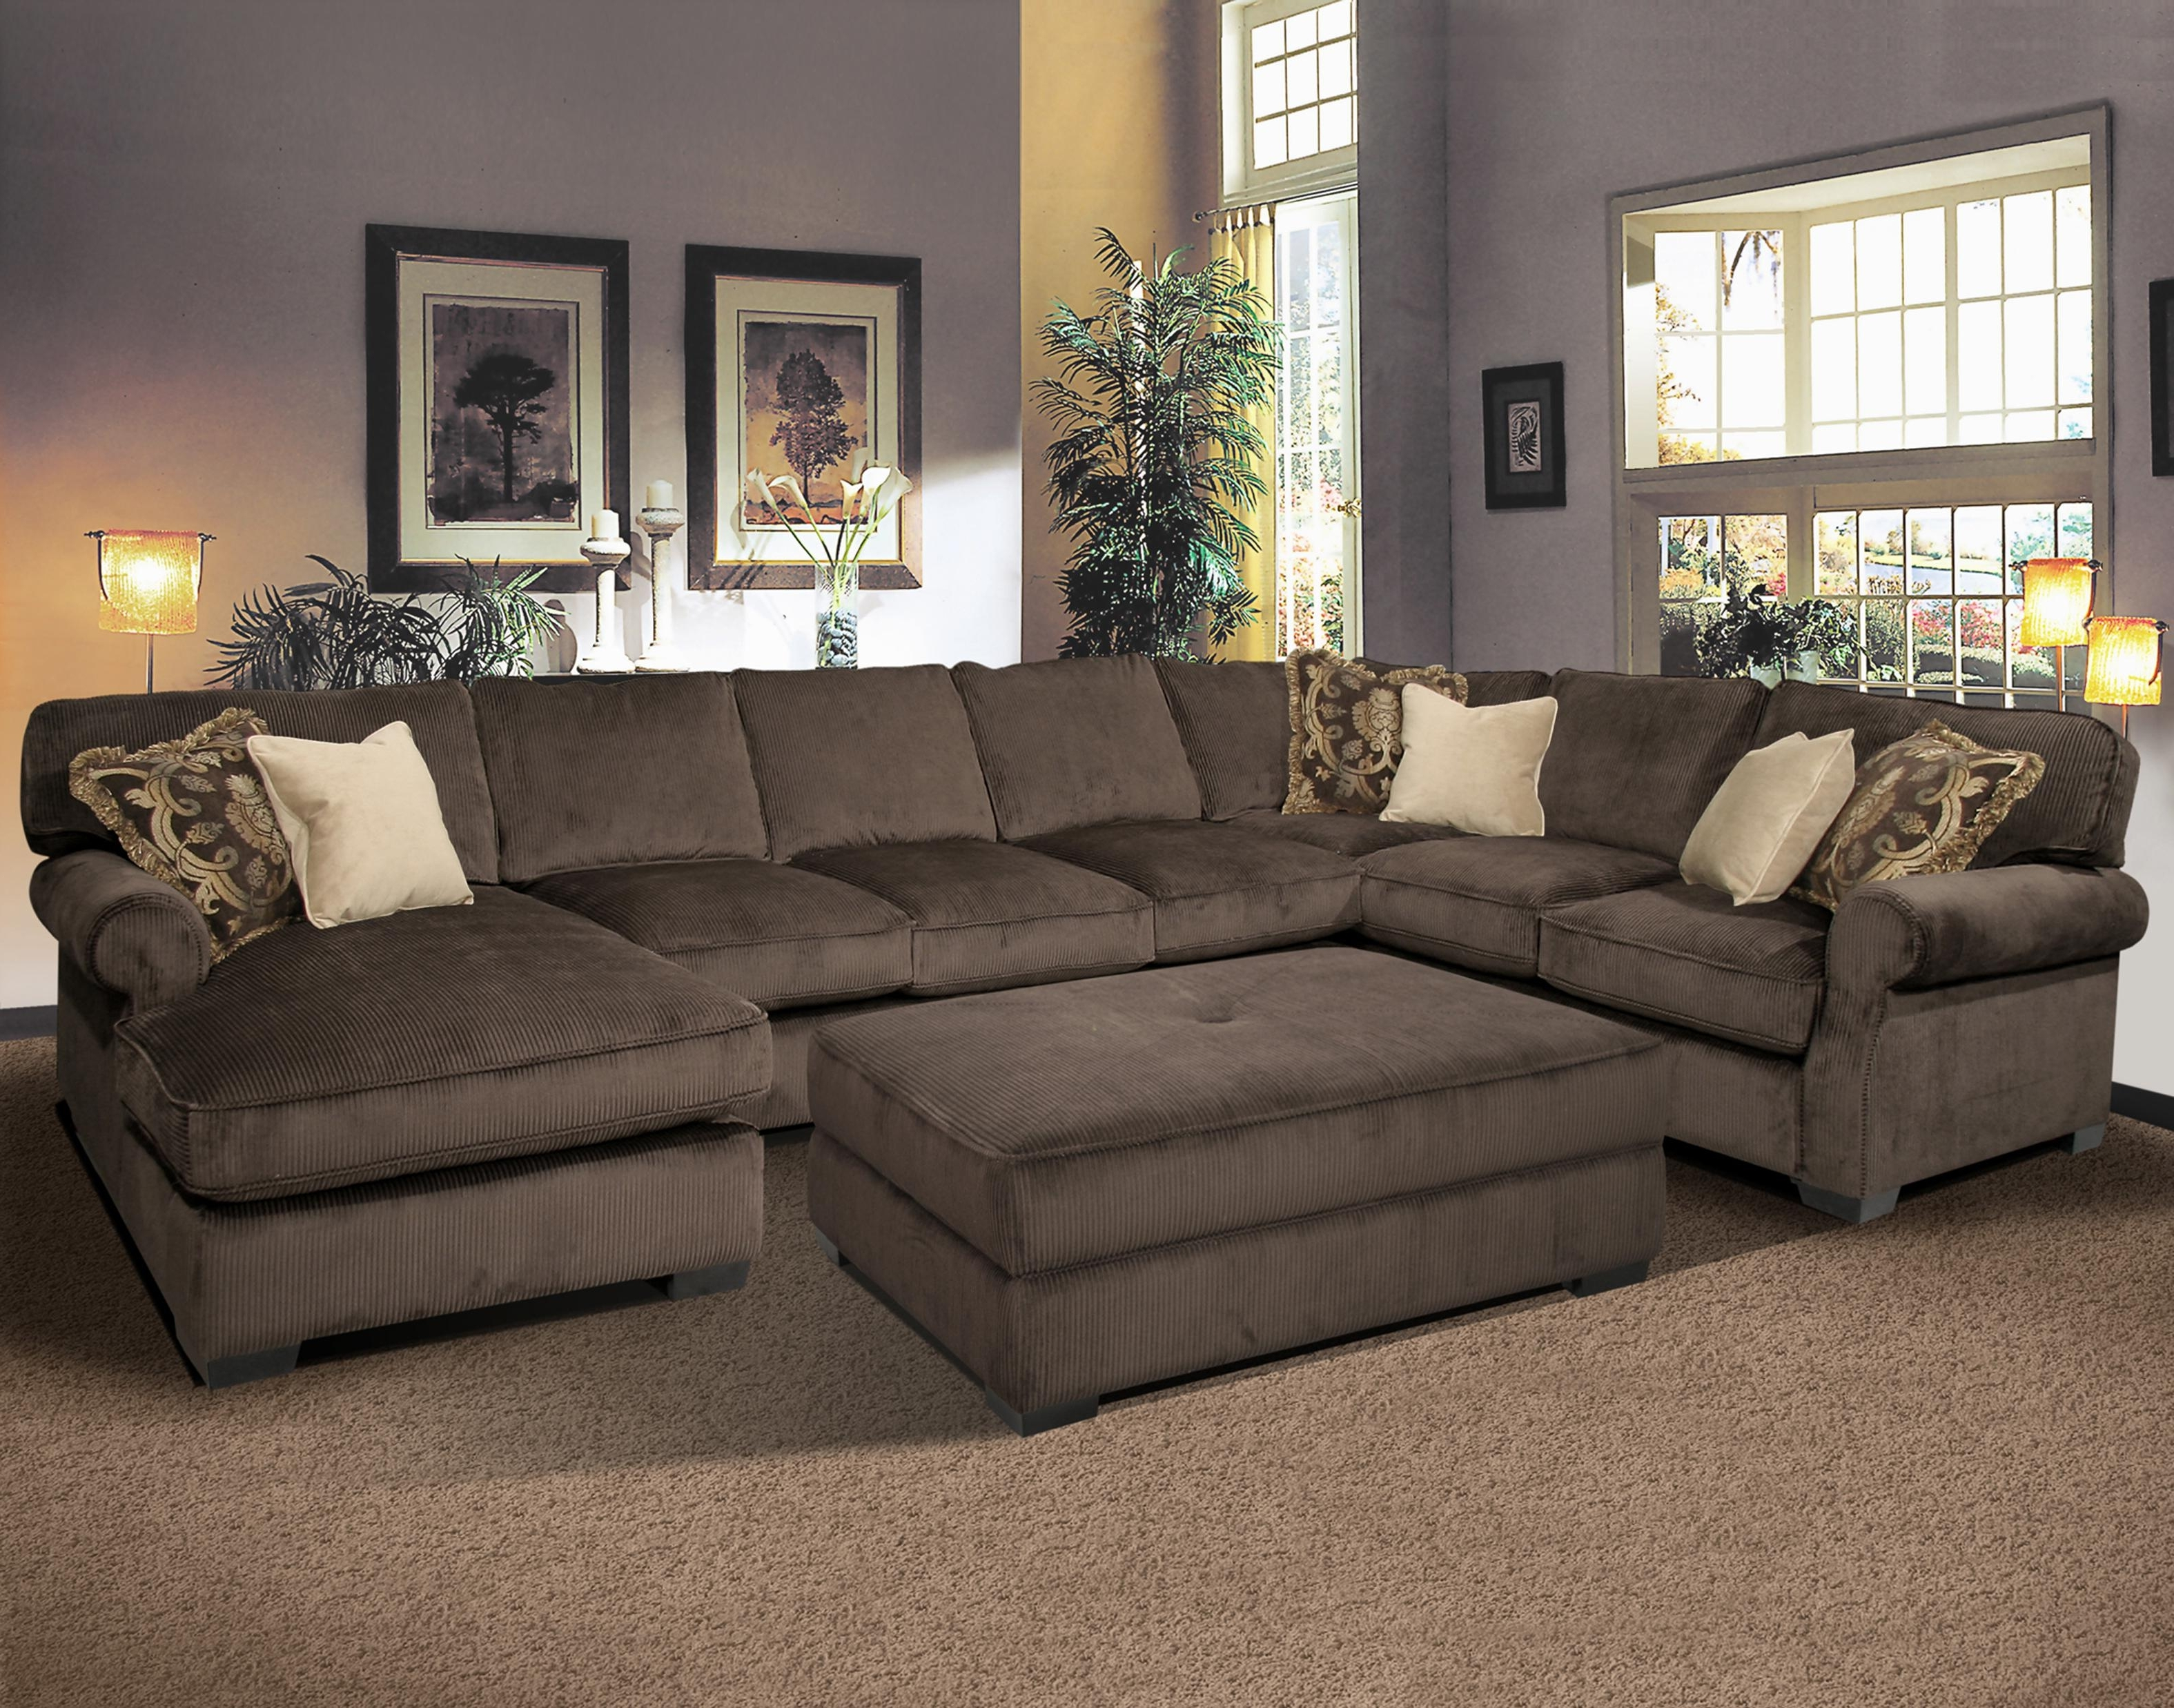 Trendy Attractive Sectional Sleeper Sofa With Chaise Fantastic Furniture Intended For Sectional Couches With Chaise (View 10 of 15)